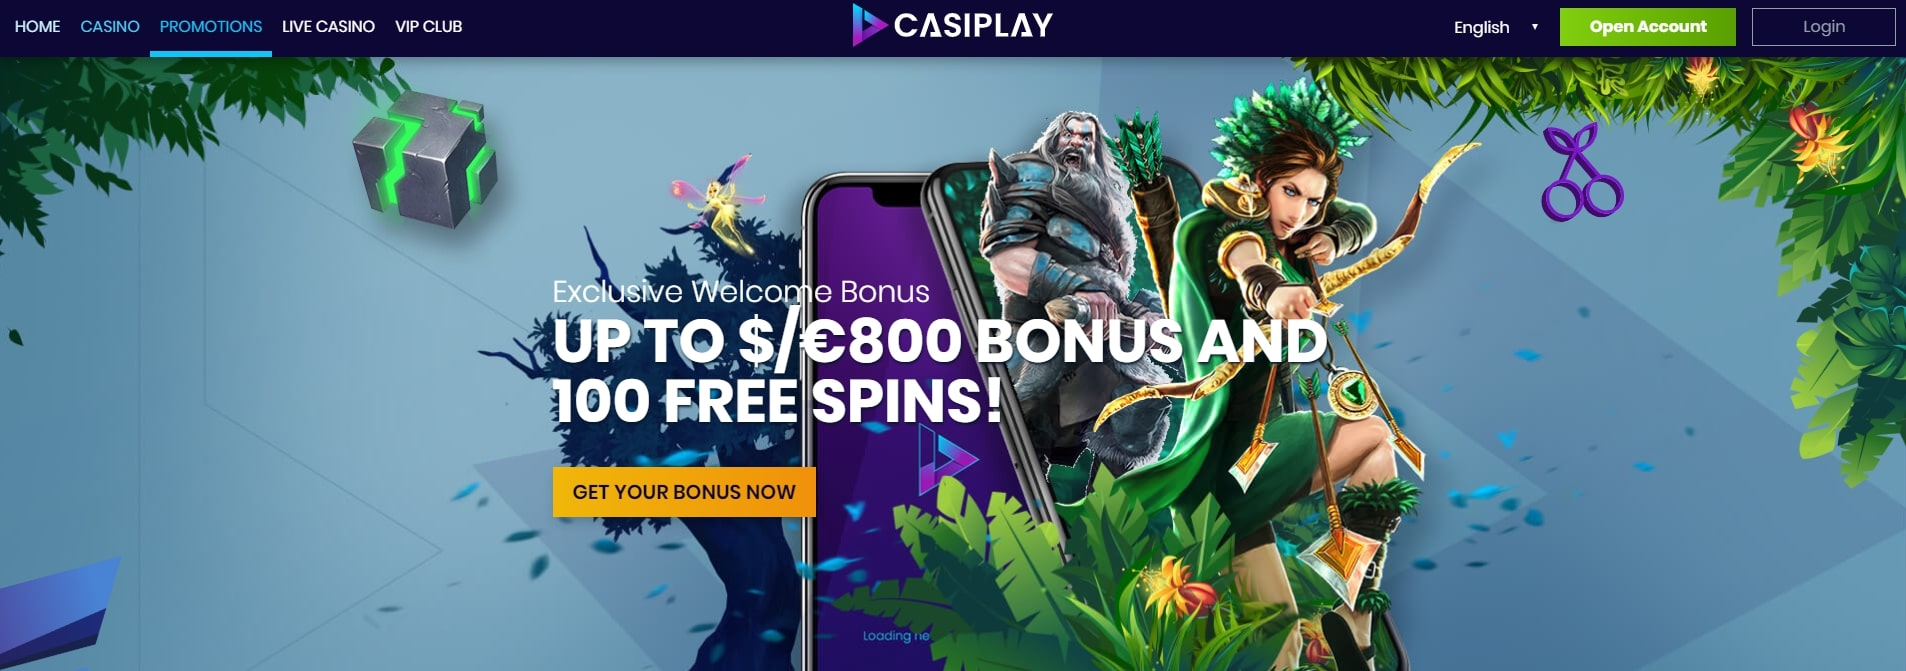 Casiplay Online Casino Landing Page